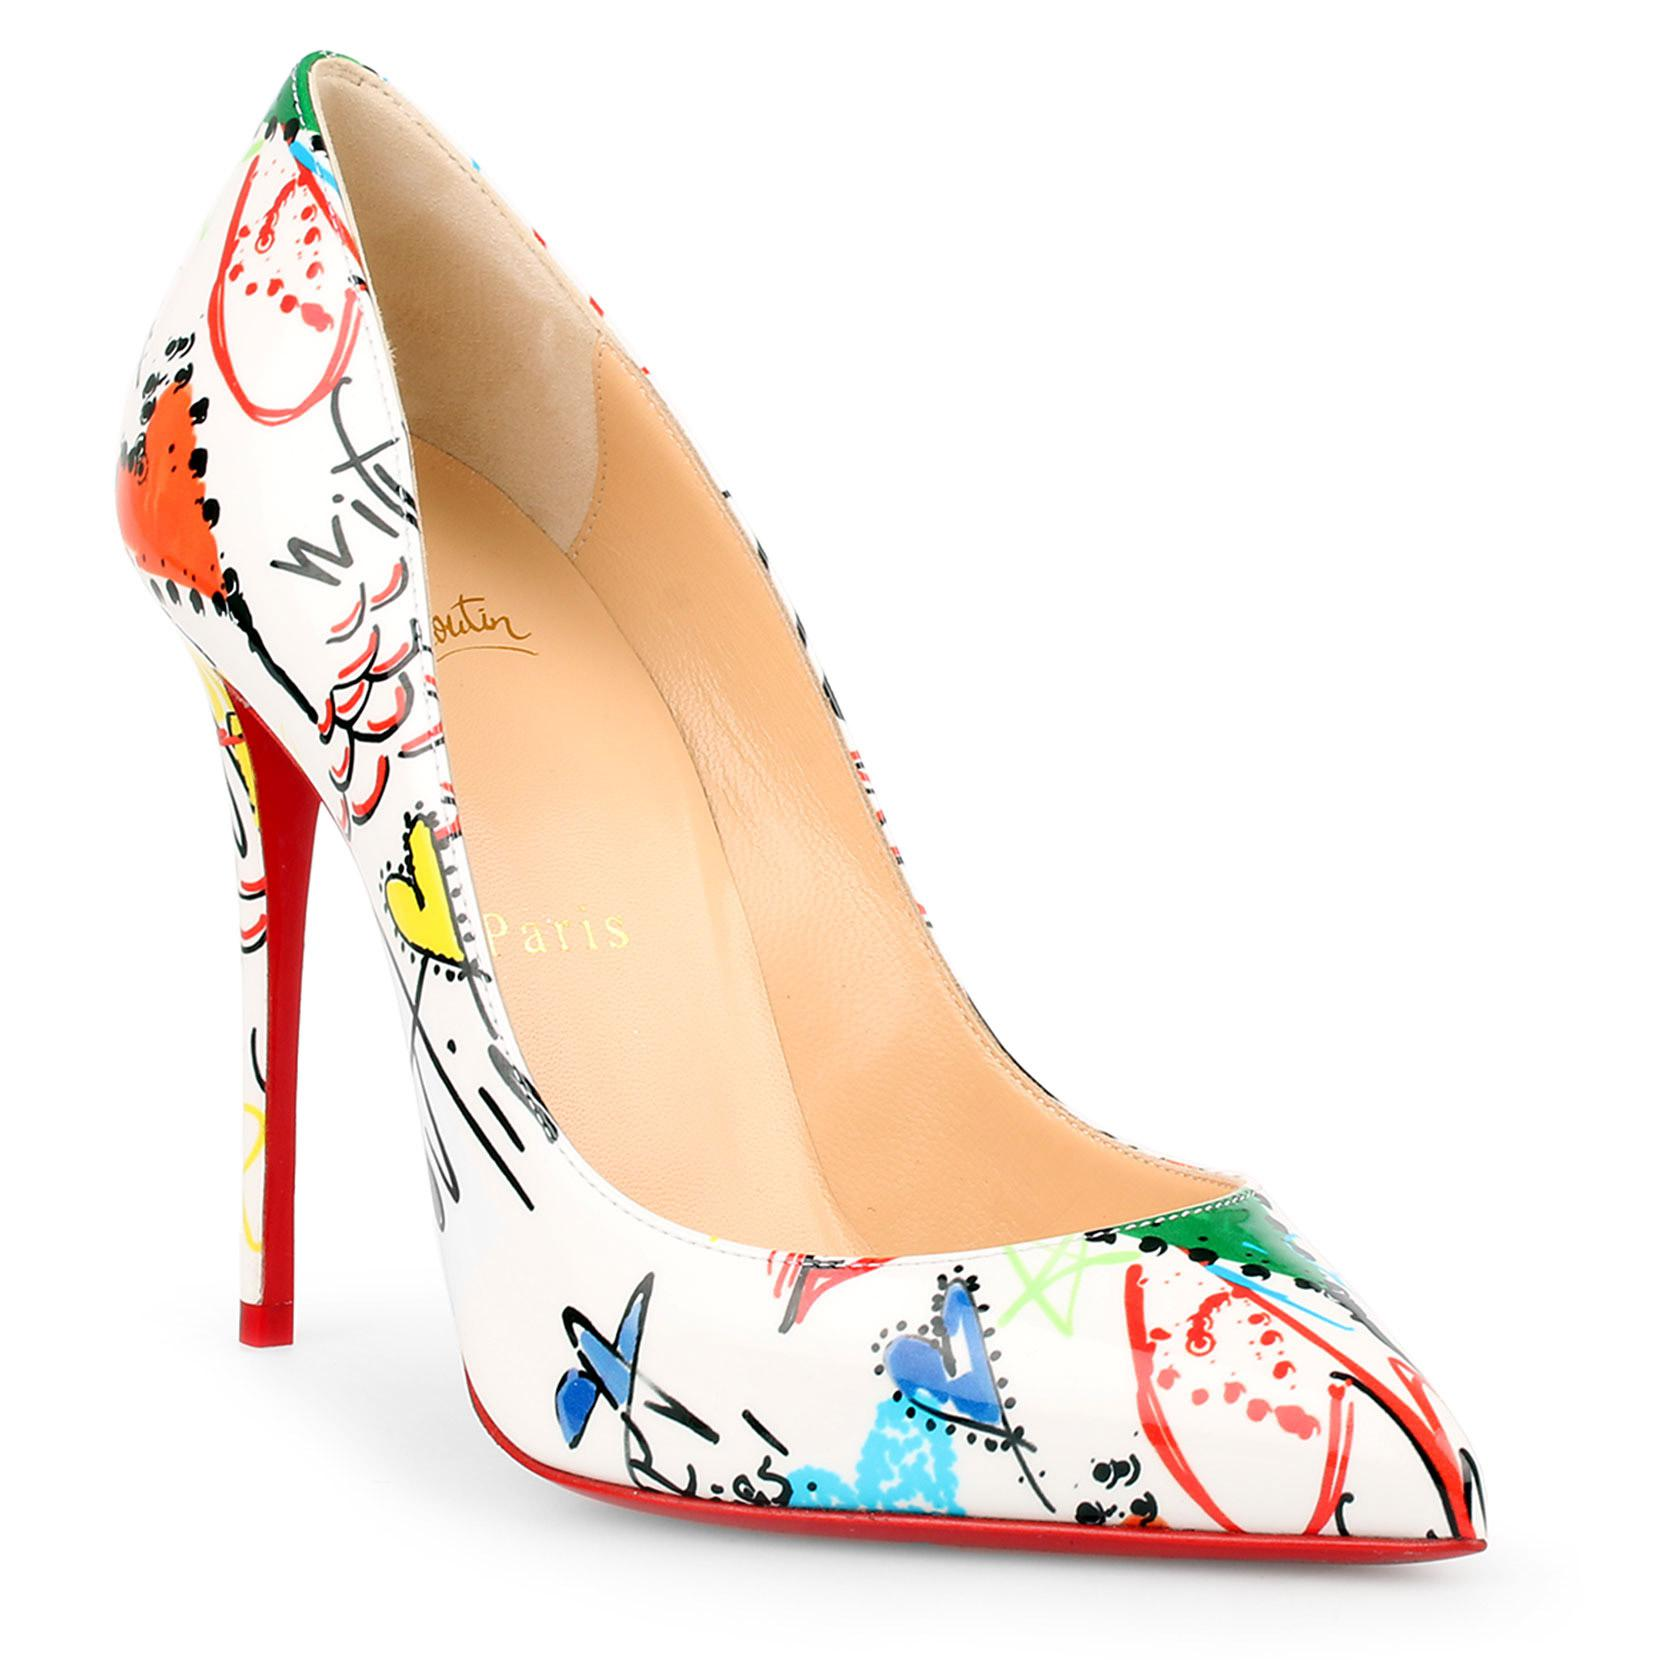 new arrival 24183 d87bf Christian Louboutin Leather Pigalle Follies 100 Patent ...